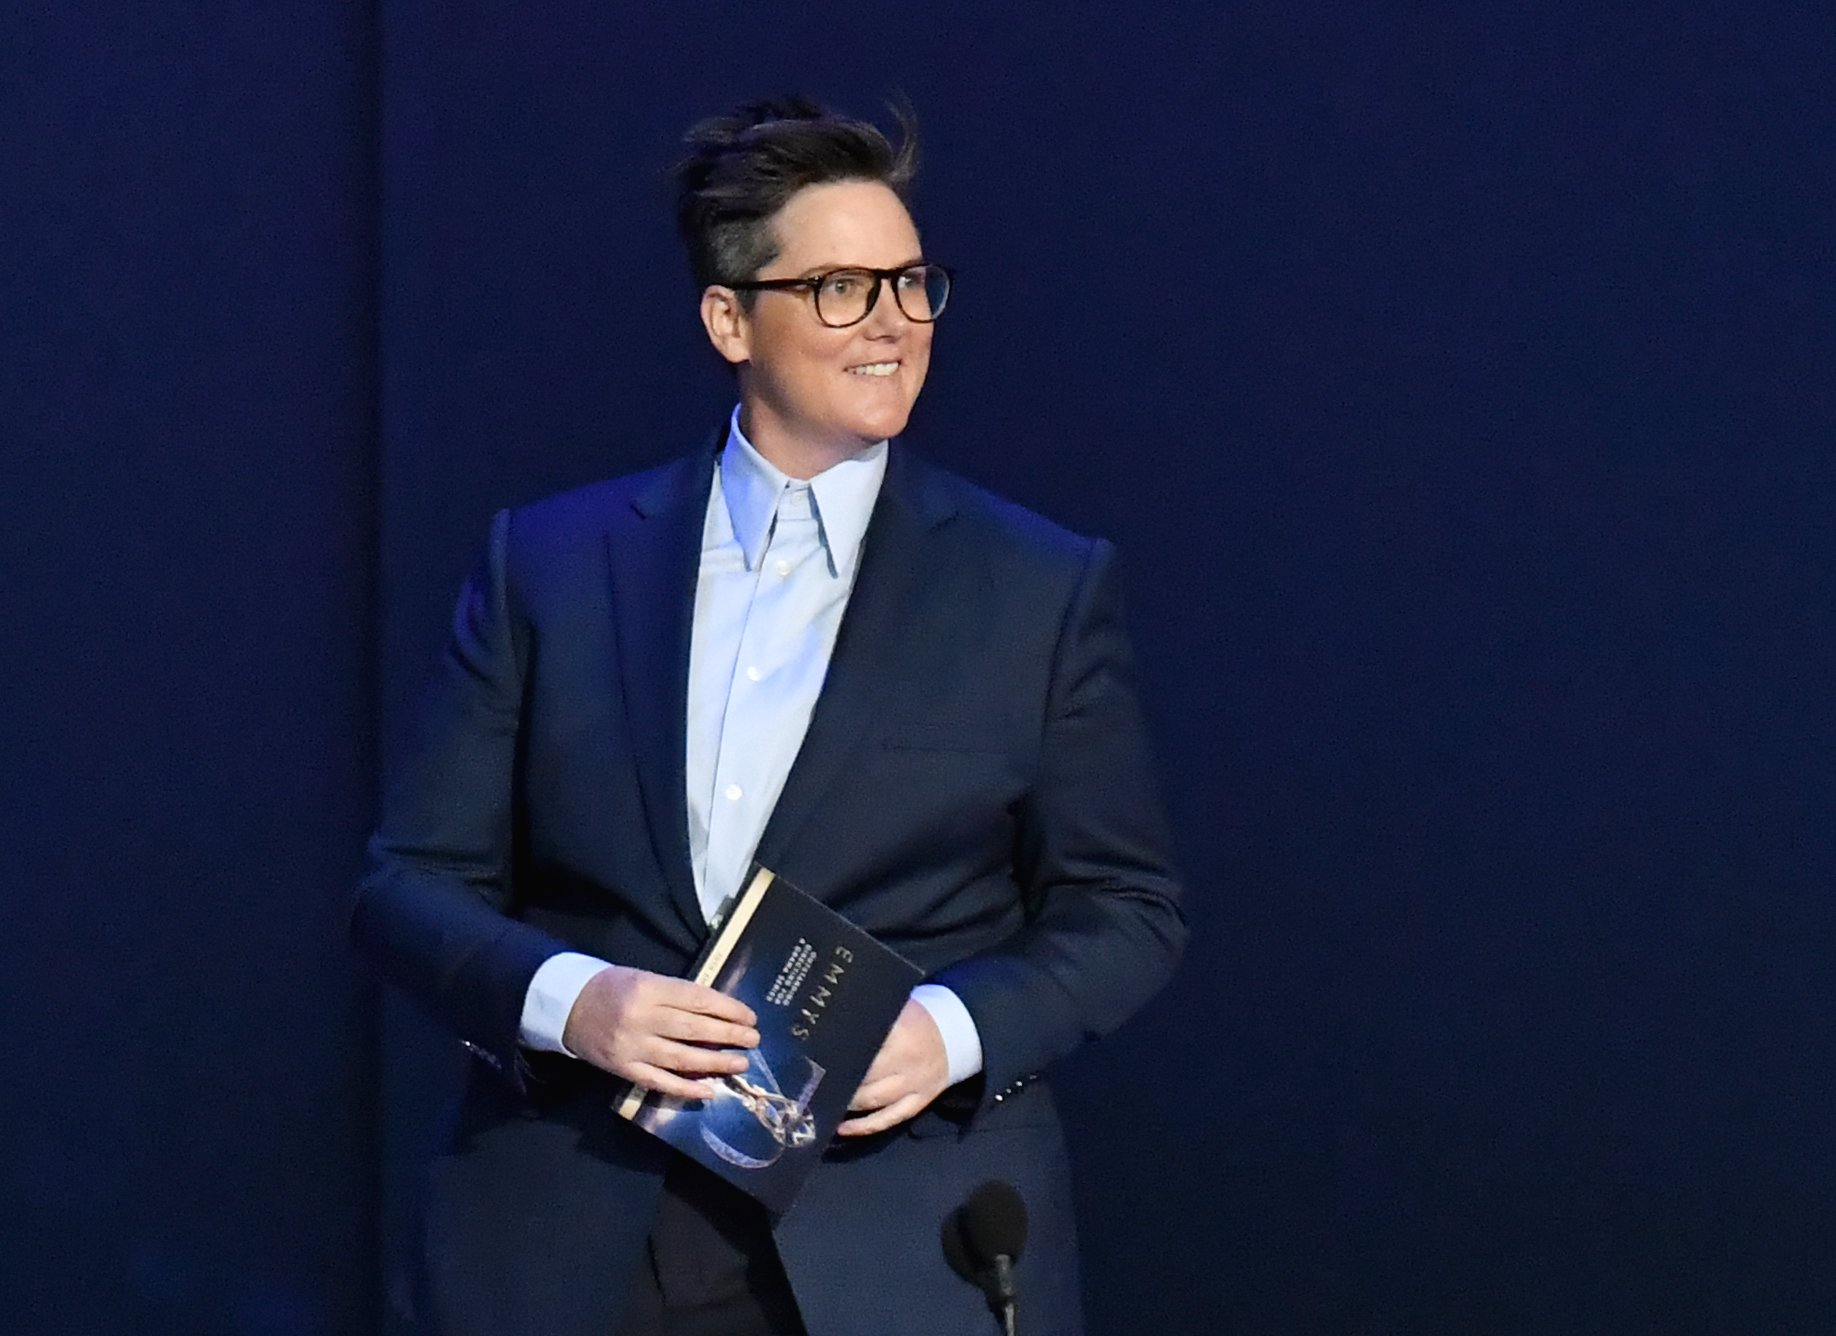 Someone give comedian Hannah Gadsby an Emmy for the funniest moment of the night